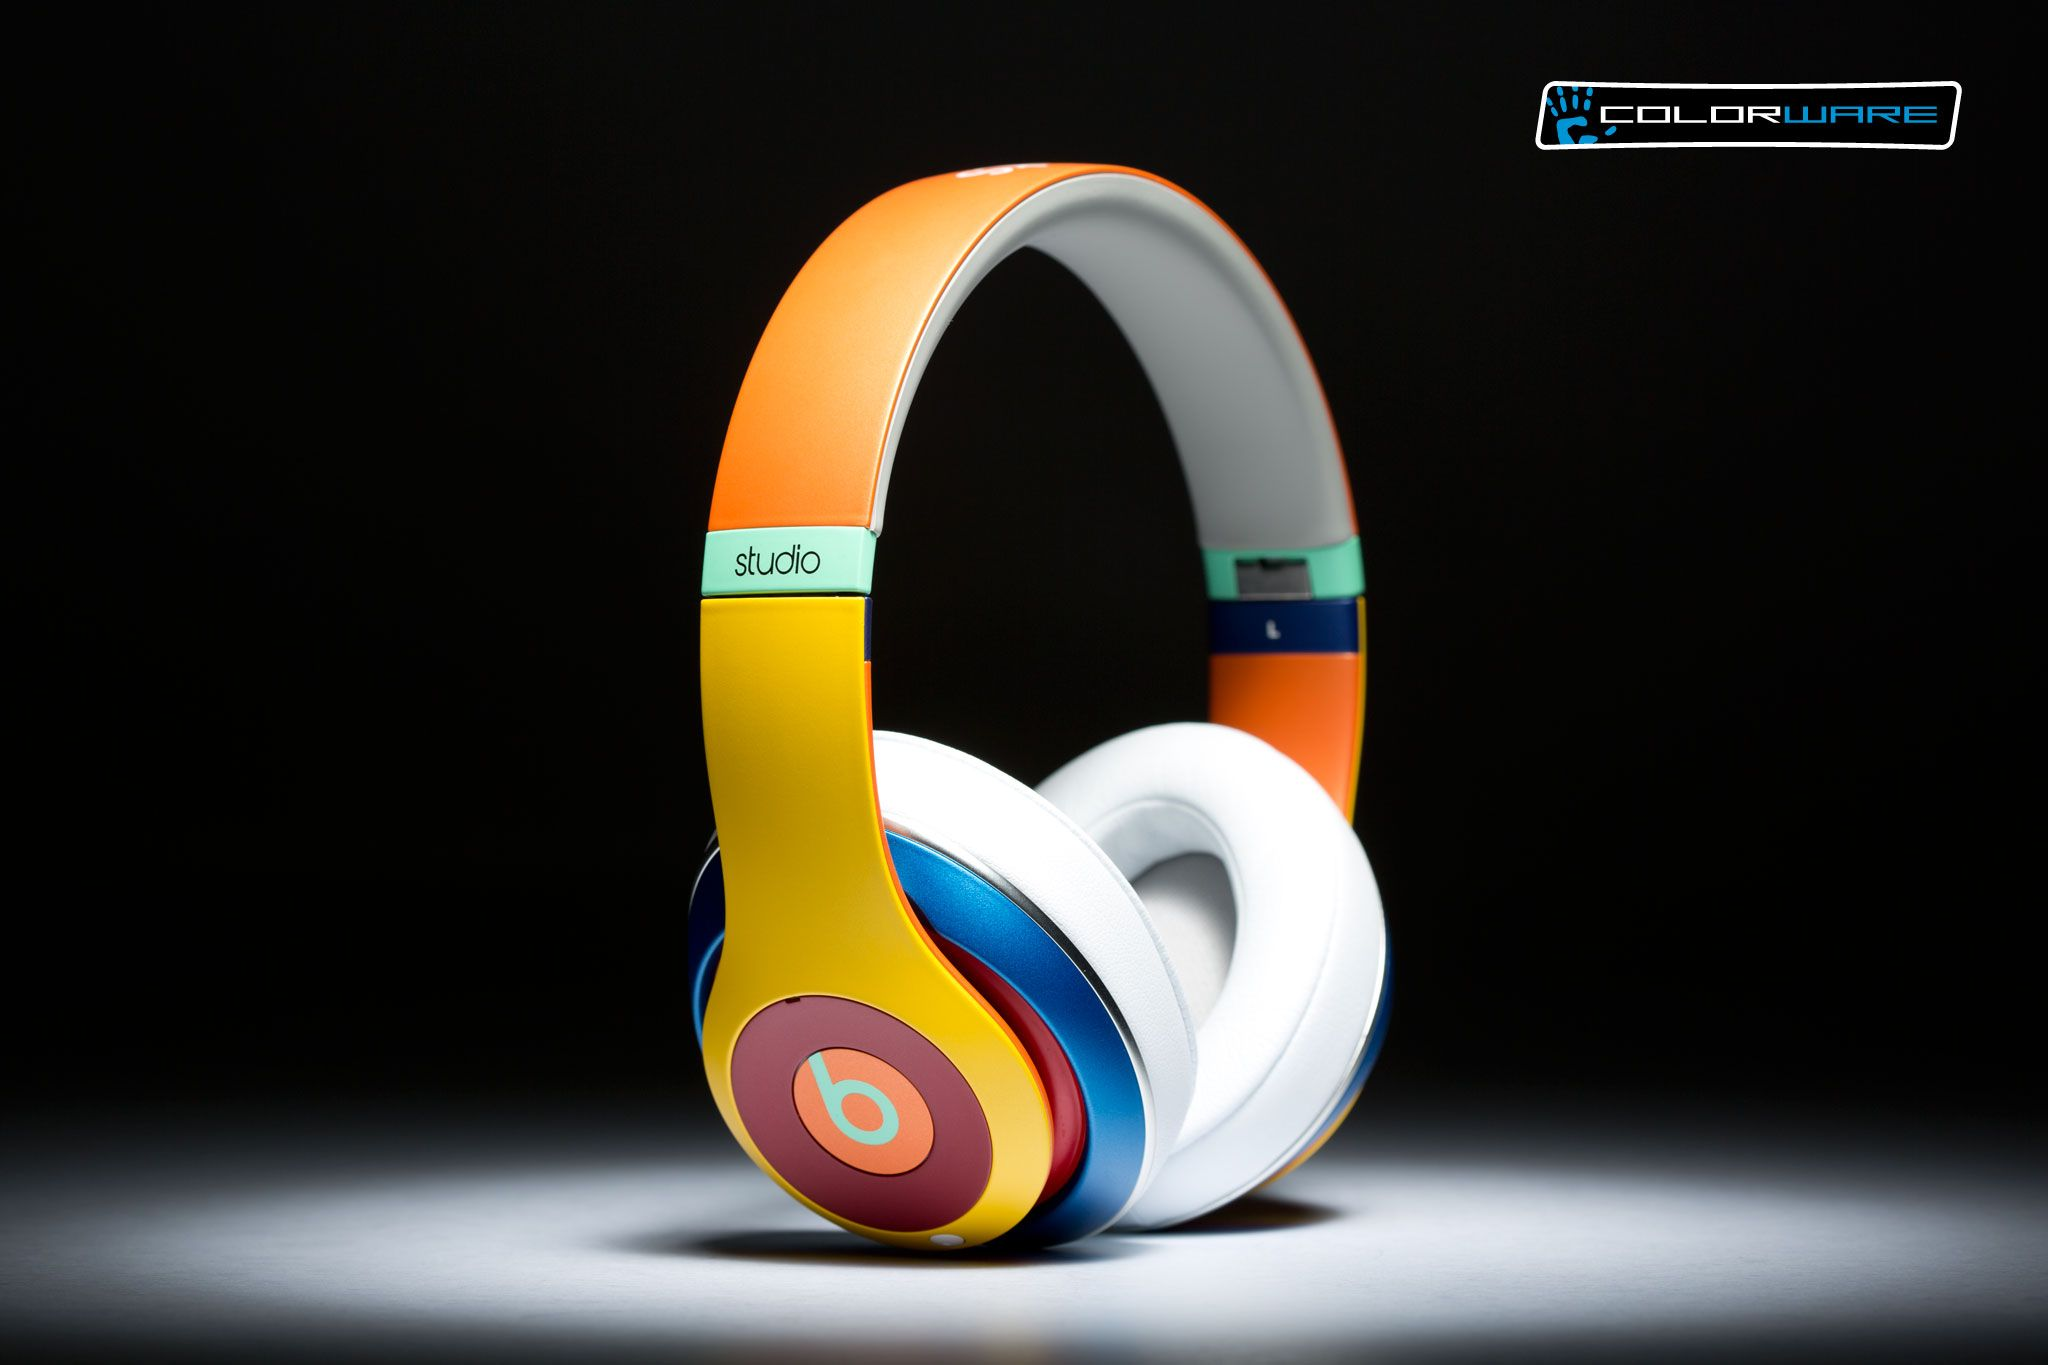 Do you like this color combination? Check out the new Beats Studio headphones at www.colorware.com.